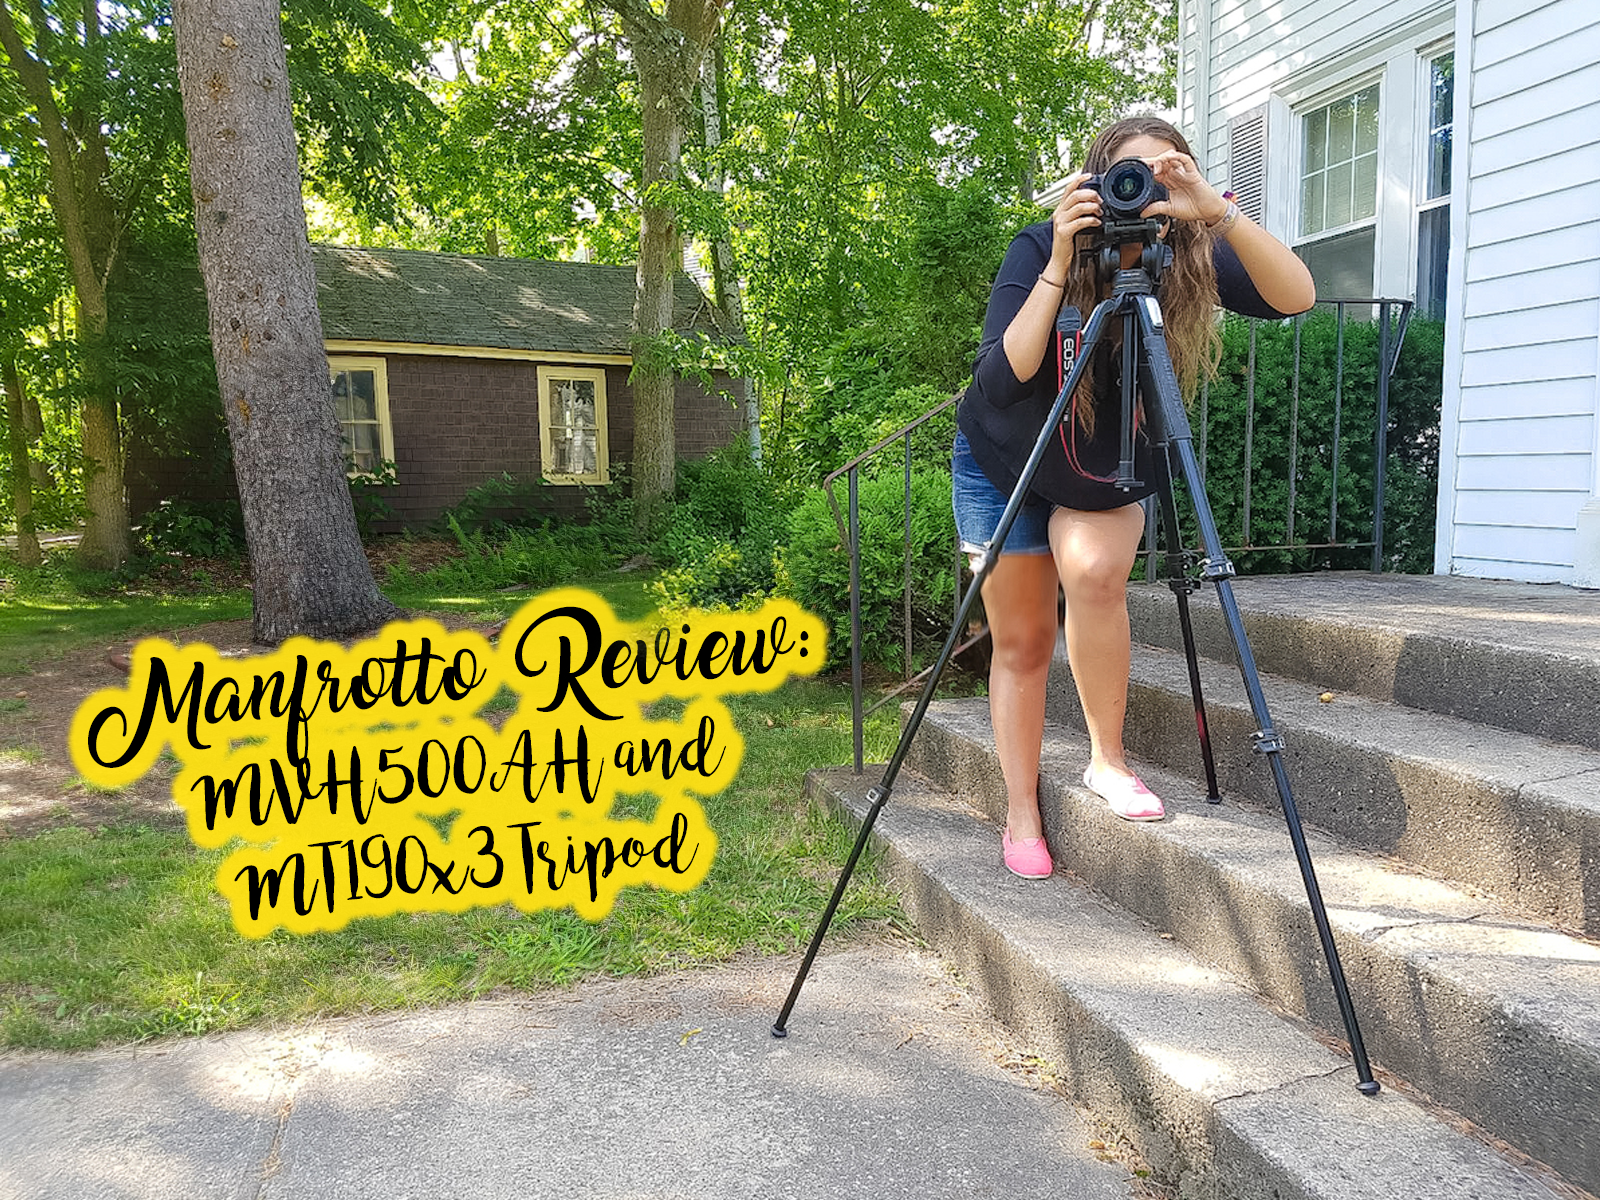 @traveltoblank's cover photo for 'Manfrotto MVH500AH and Manfrotto MT190x3 Tripod Review - Travel To Blank Travel Guide'